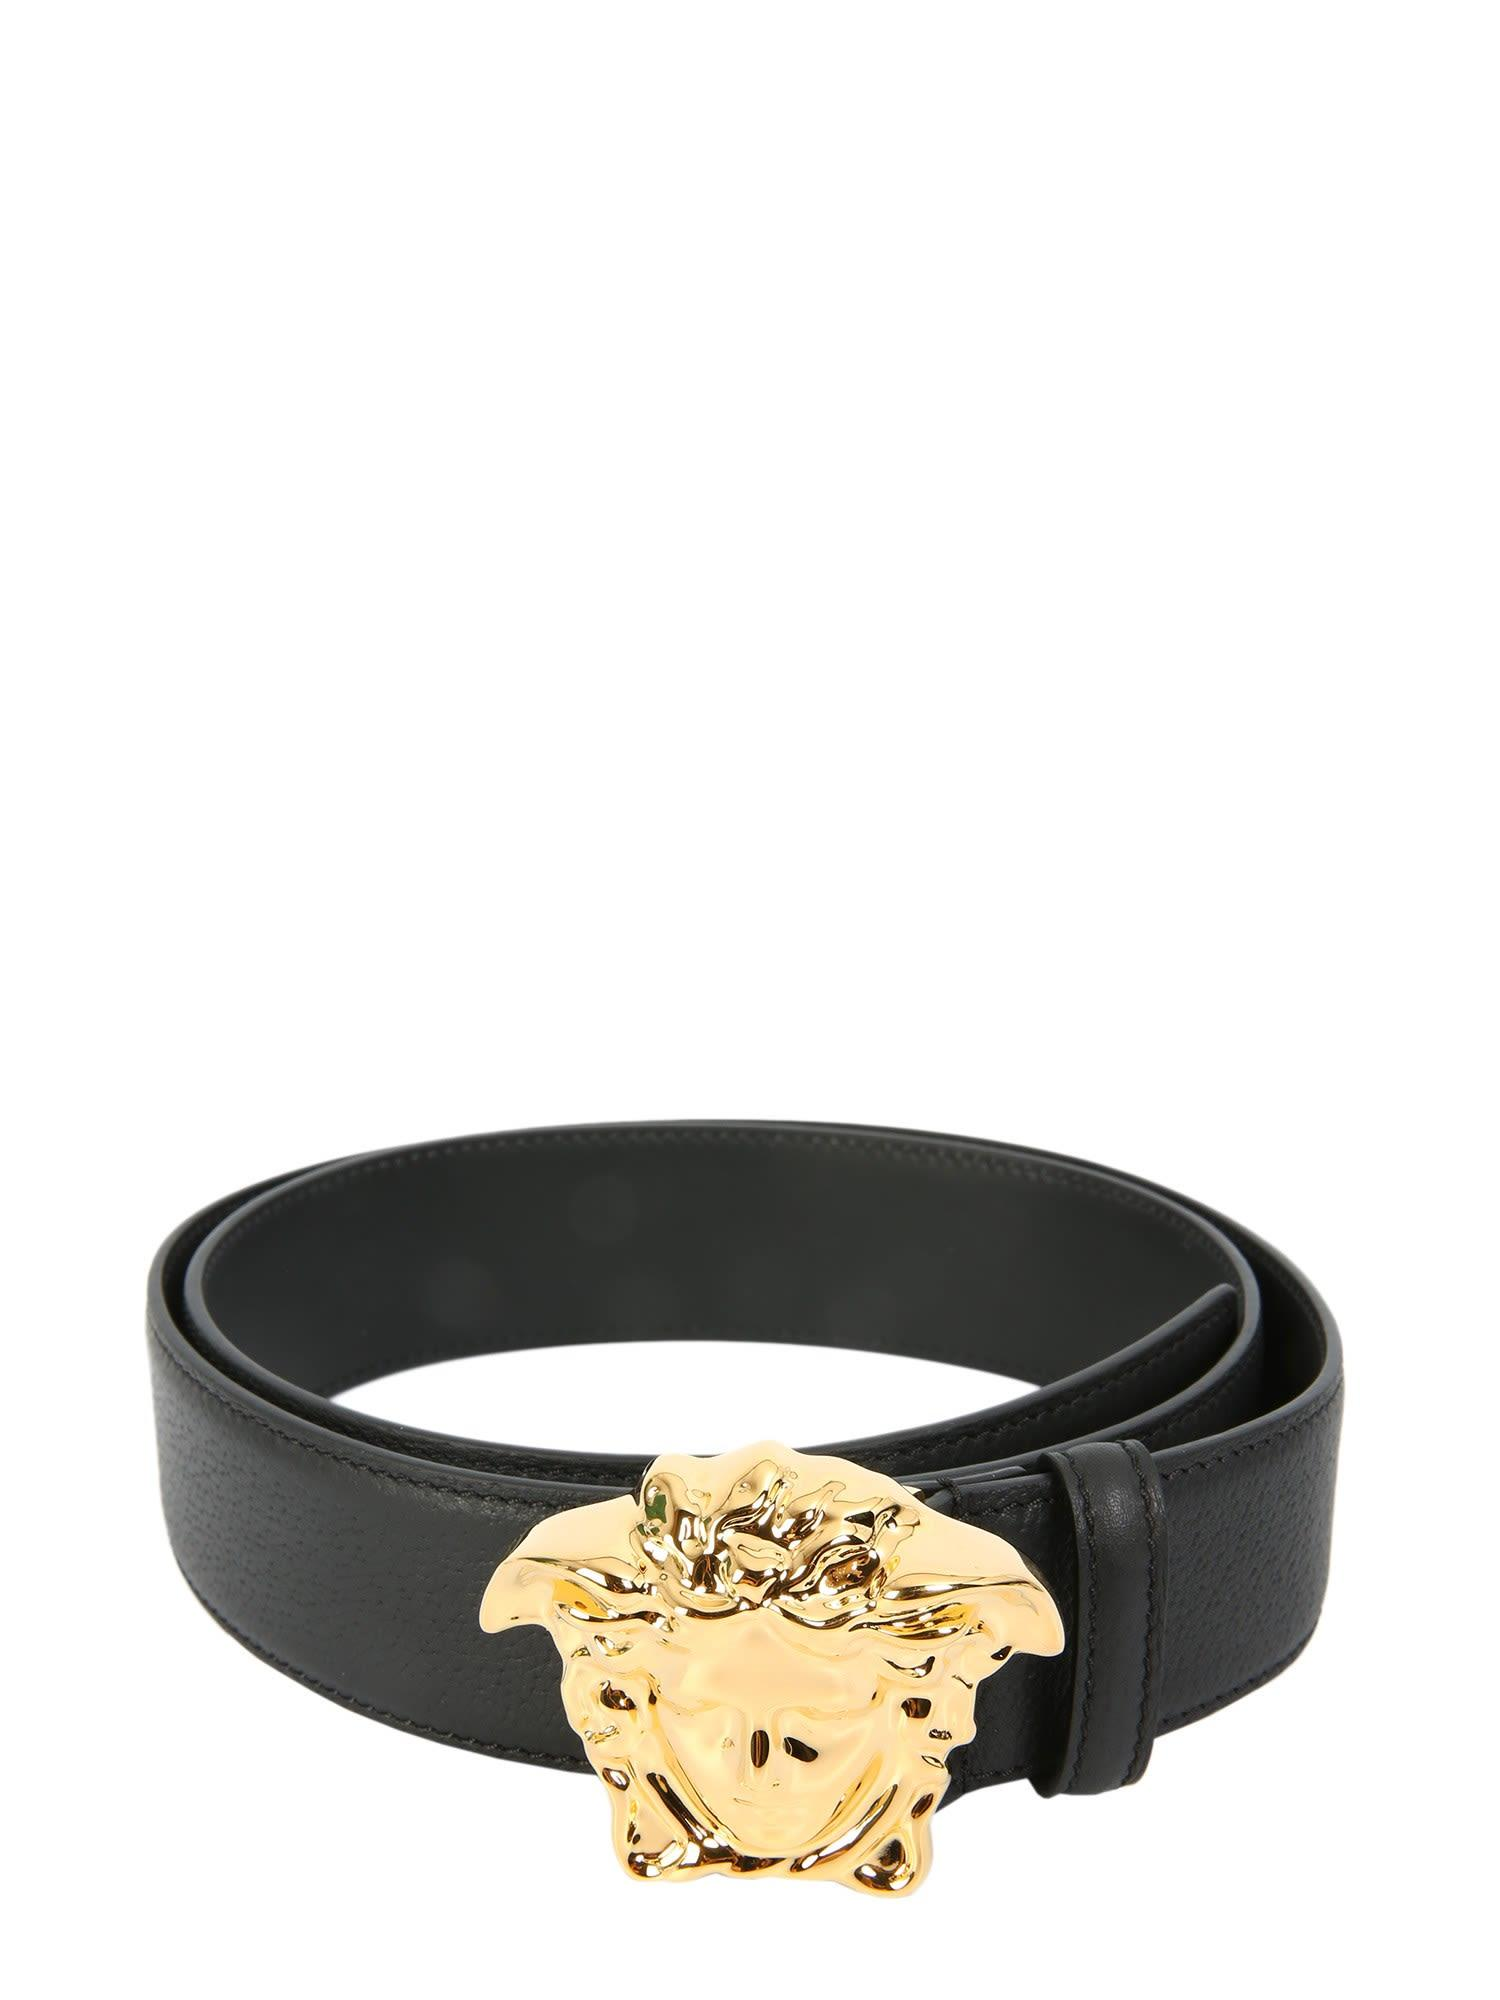 Belt With Medusa Head Buckle In Nero